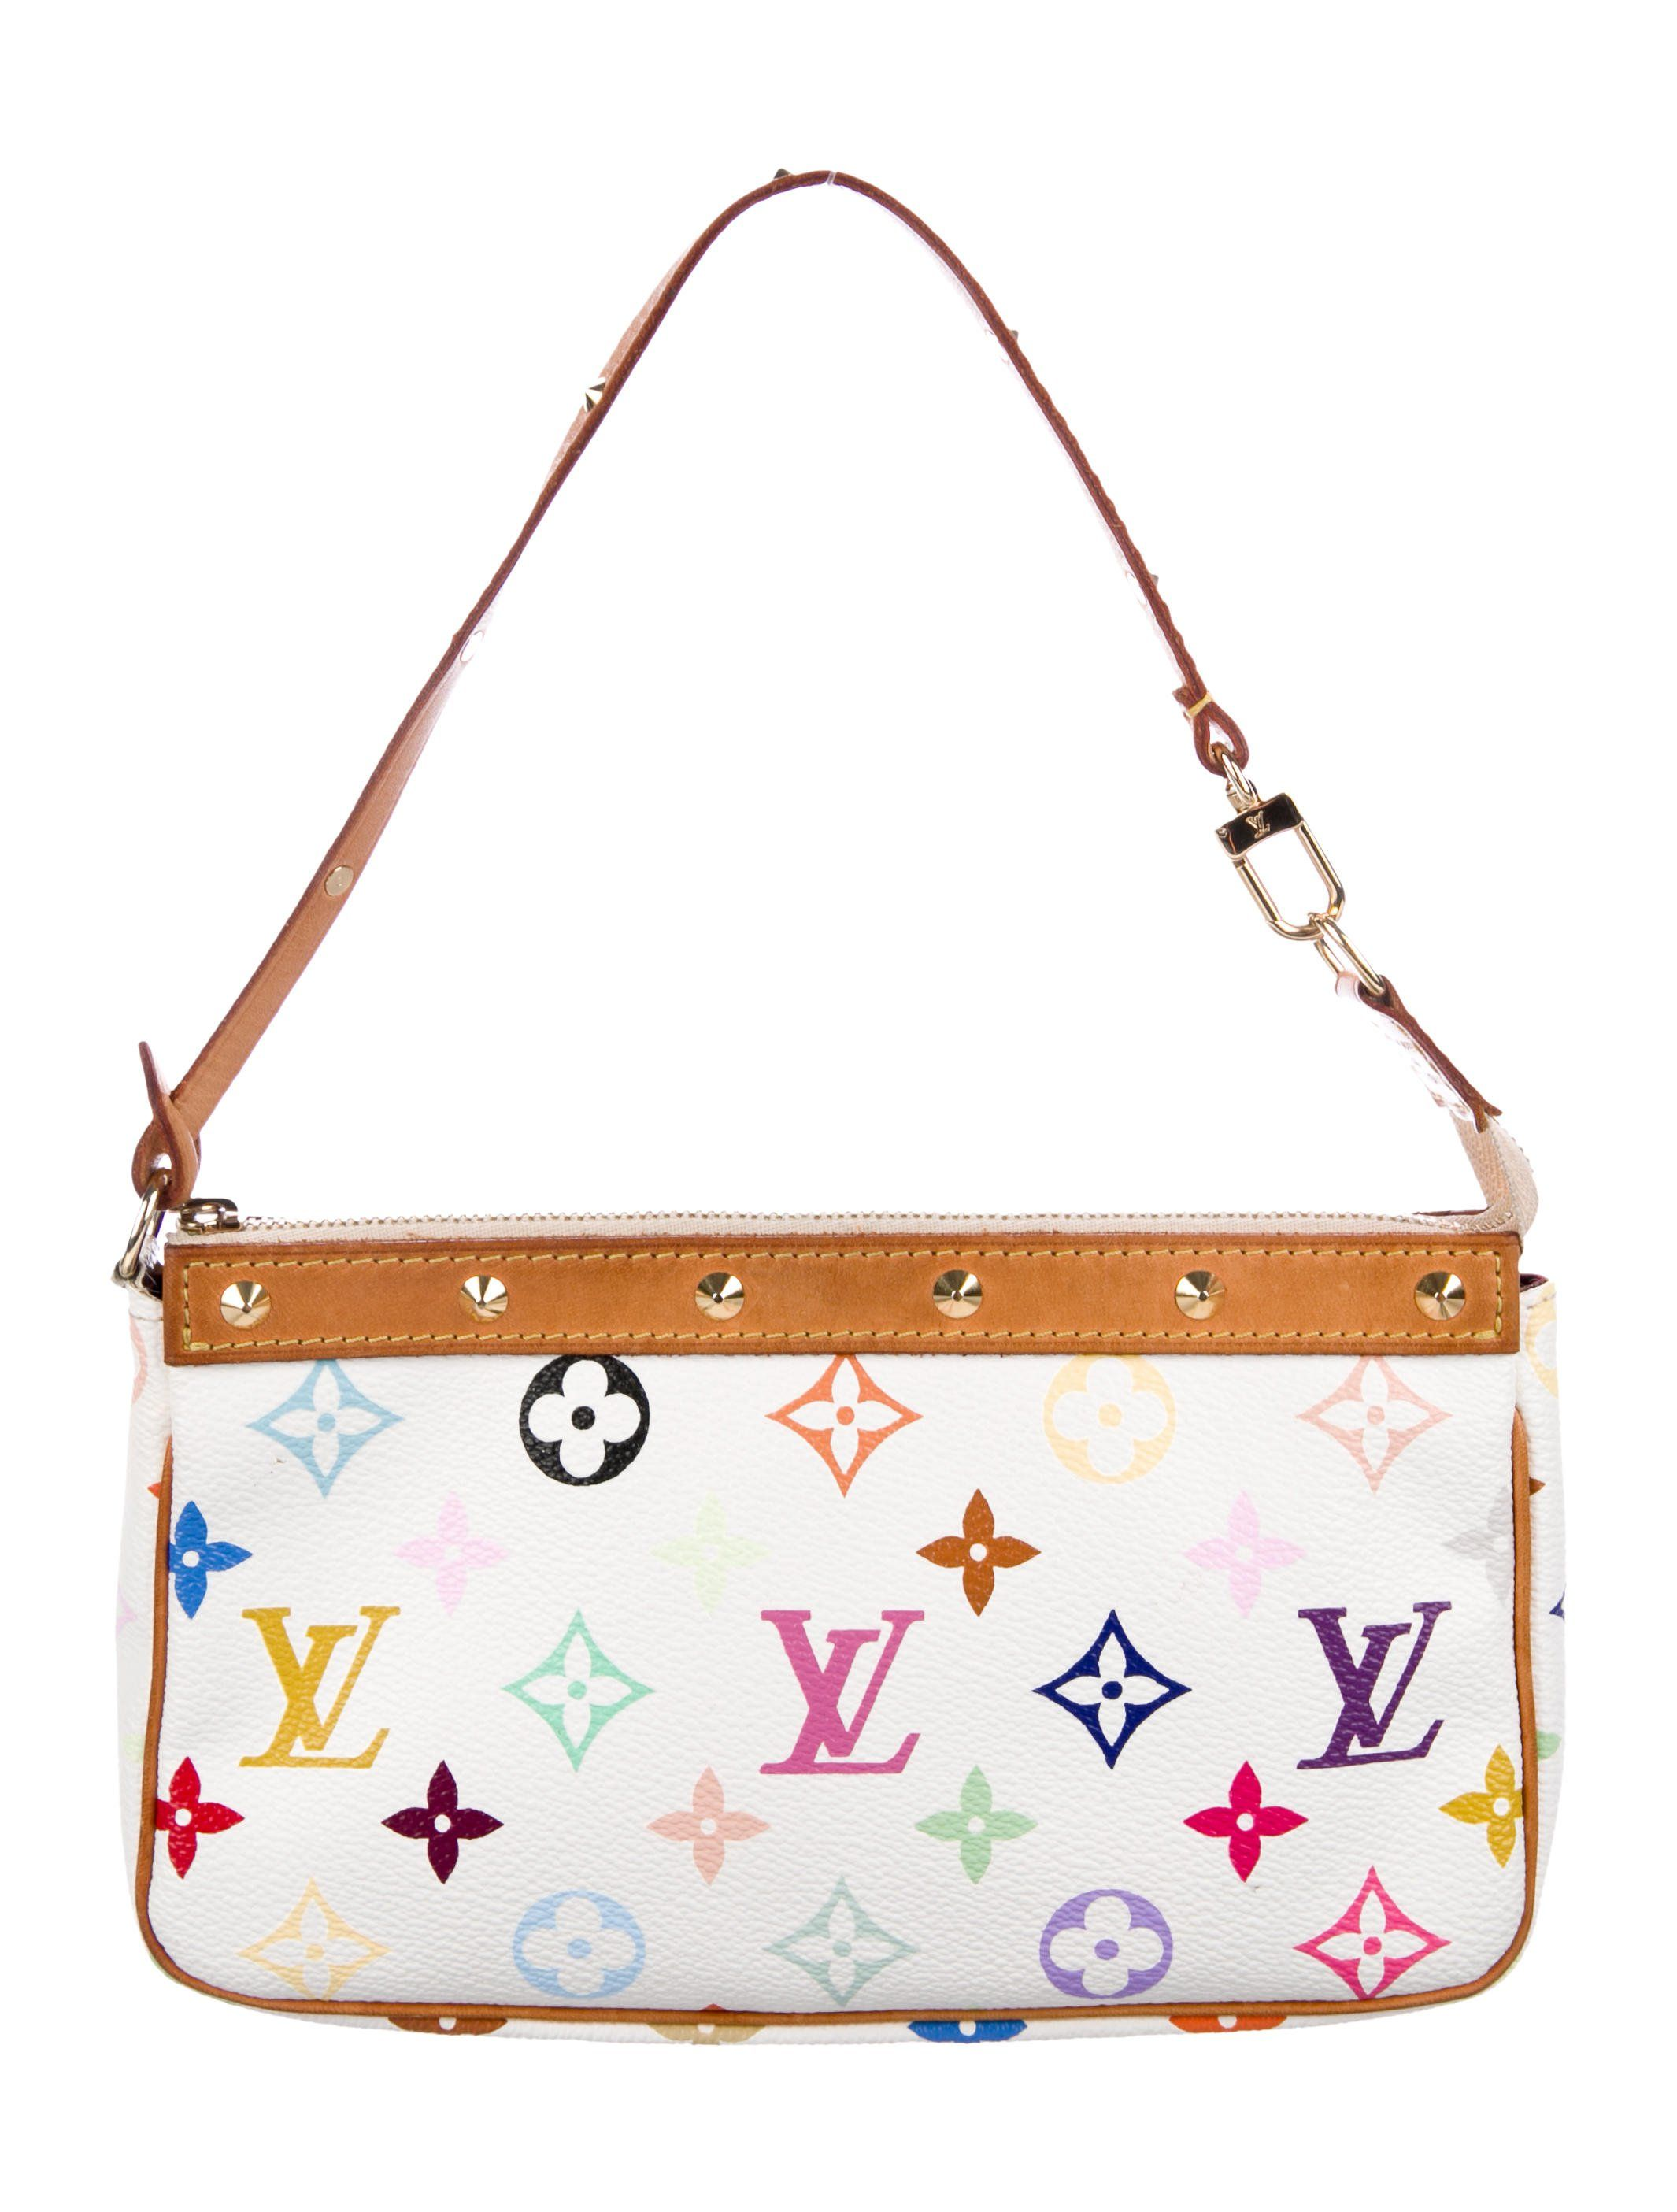 Limited Edition From The Takashi Murakami Collection White And Multicolore Monogram Louis Vuitton Handbags Crossbody Louis Vuitton Handbags Louis Vuitton Bag